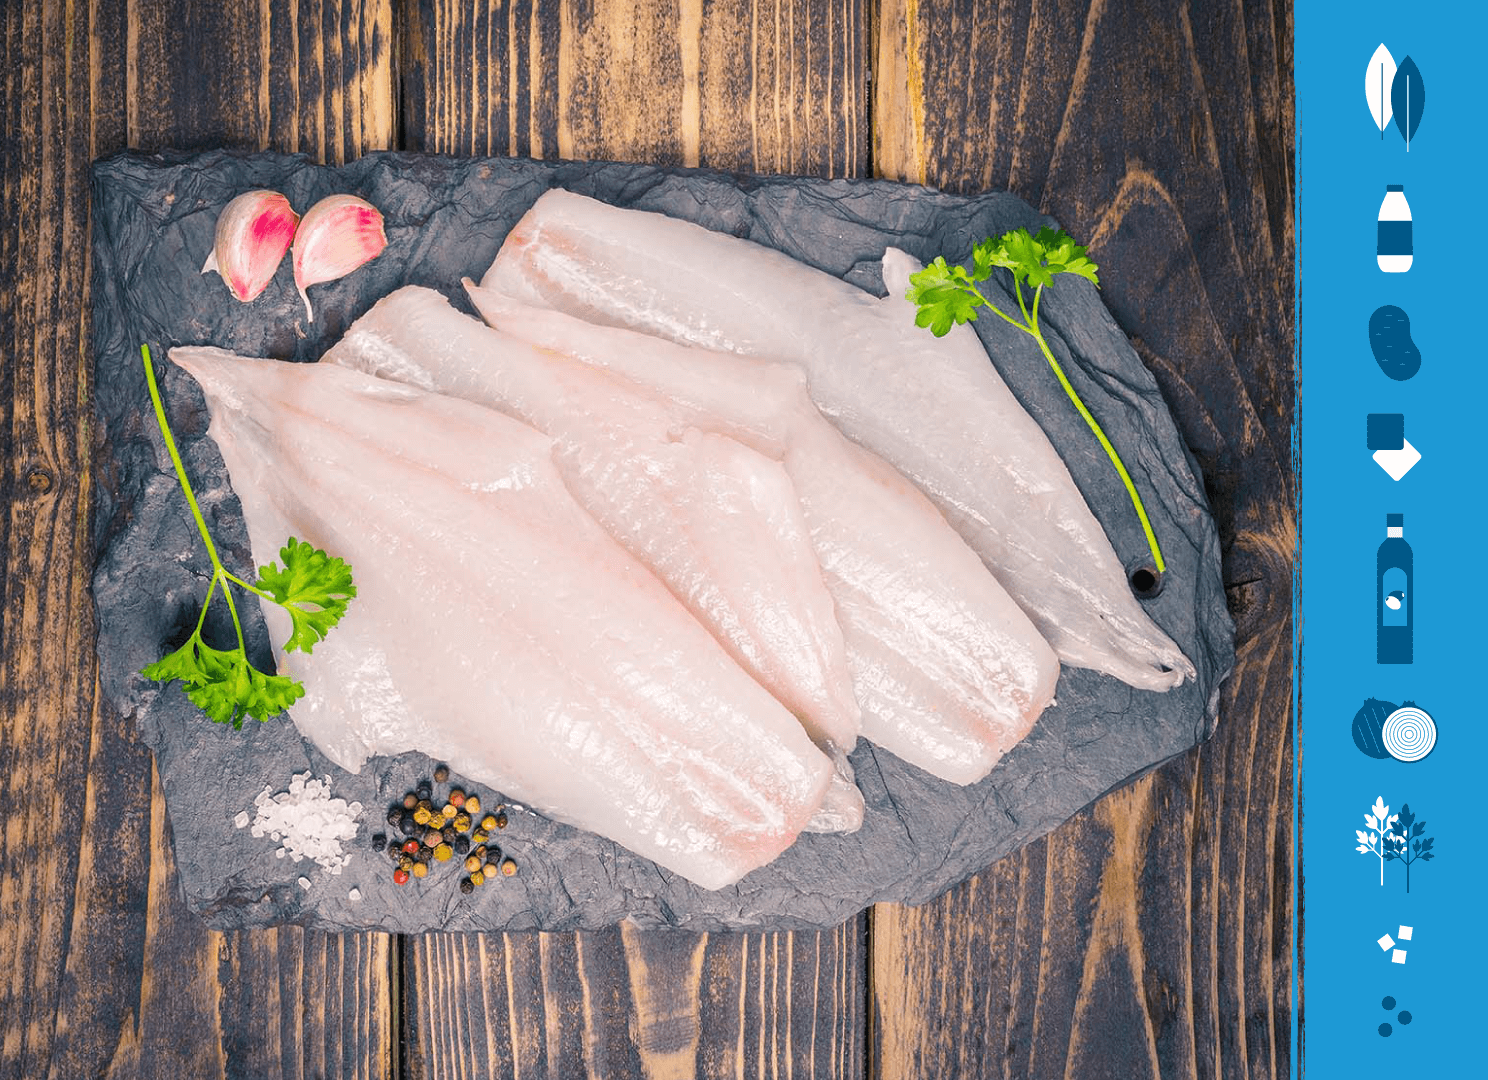 Haddock fillets on a slate background next to illustrations of the ingredients needed to make Cullen Skink